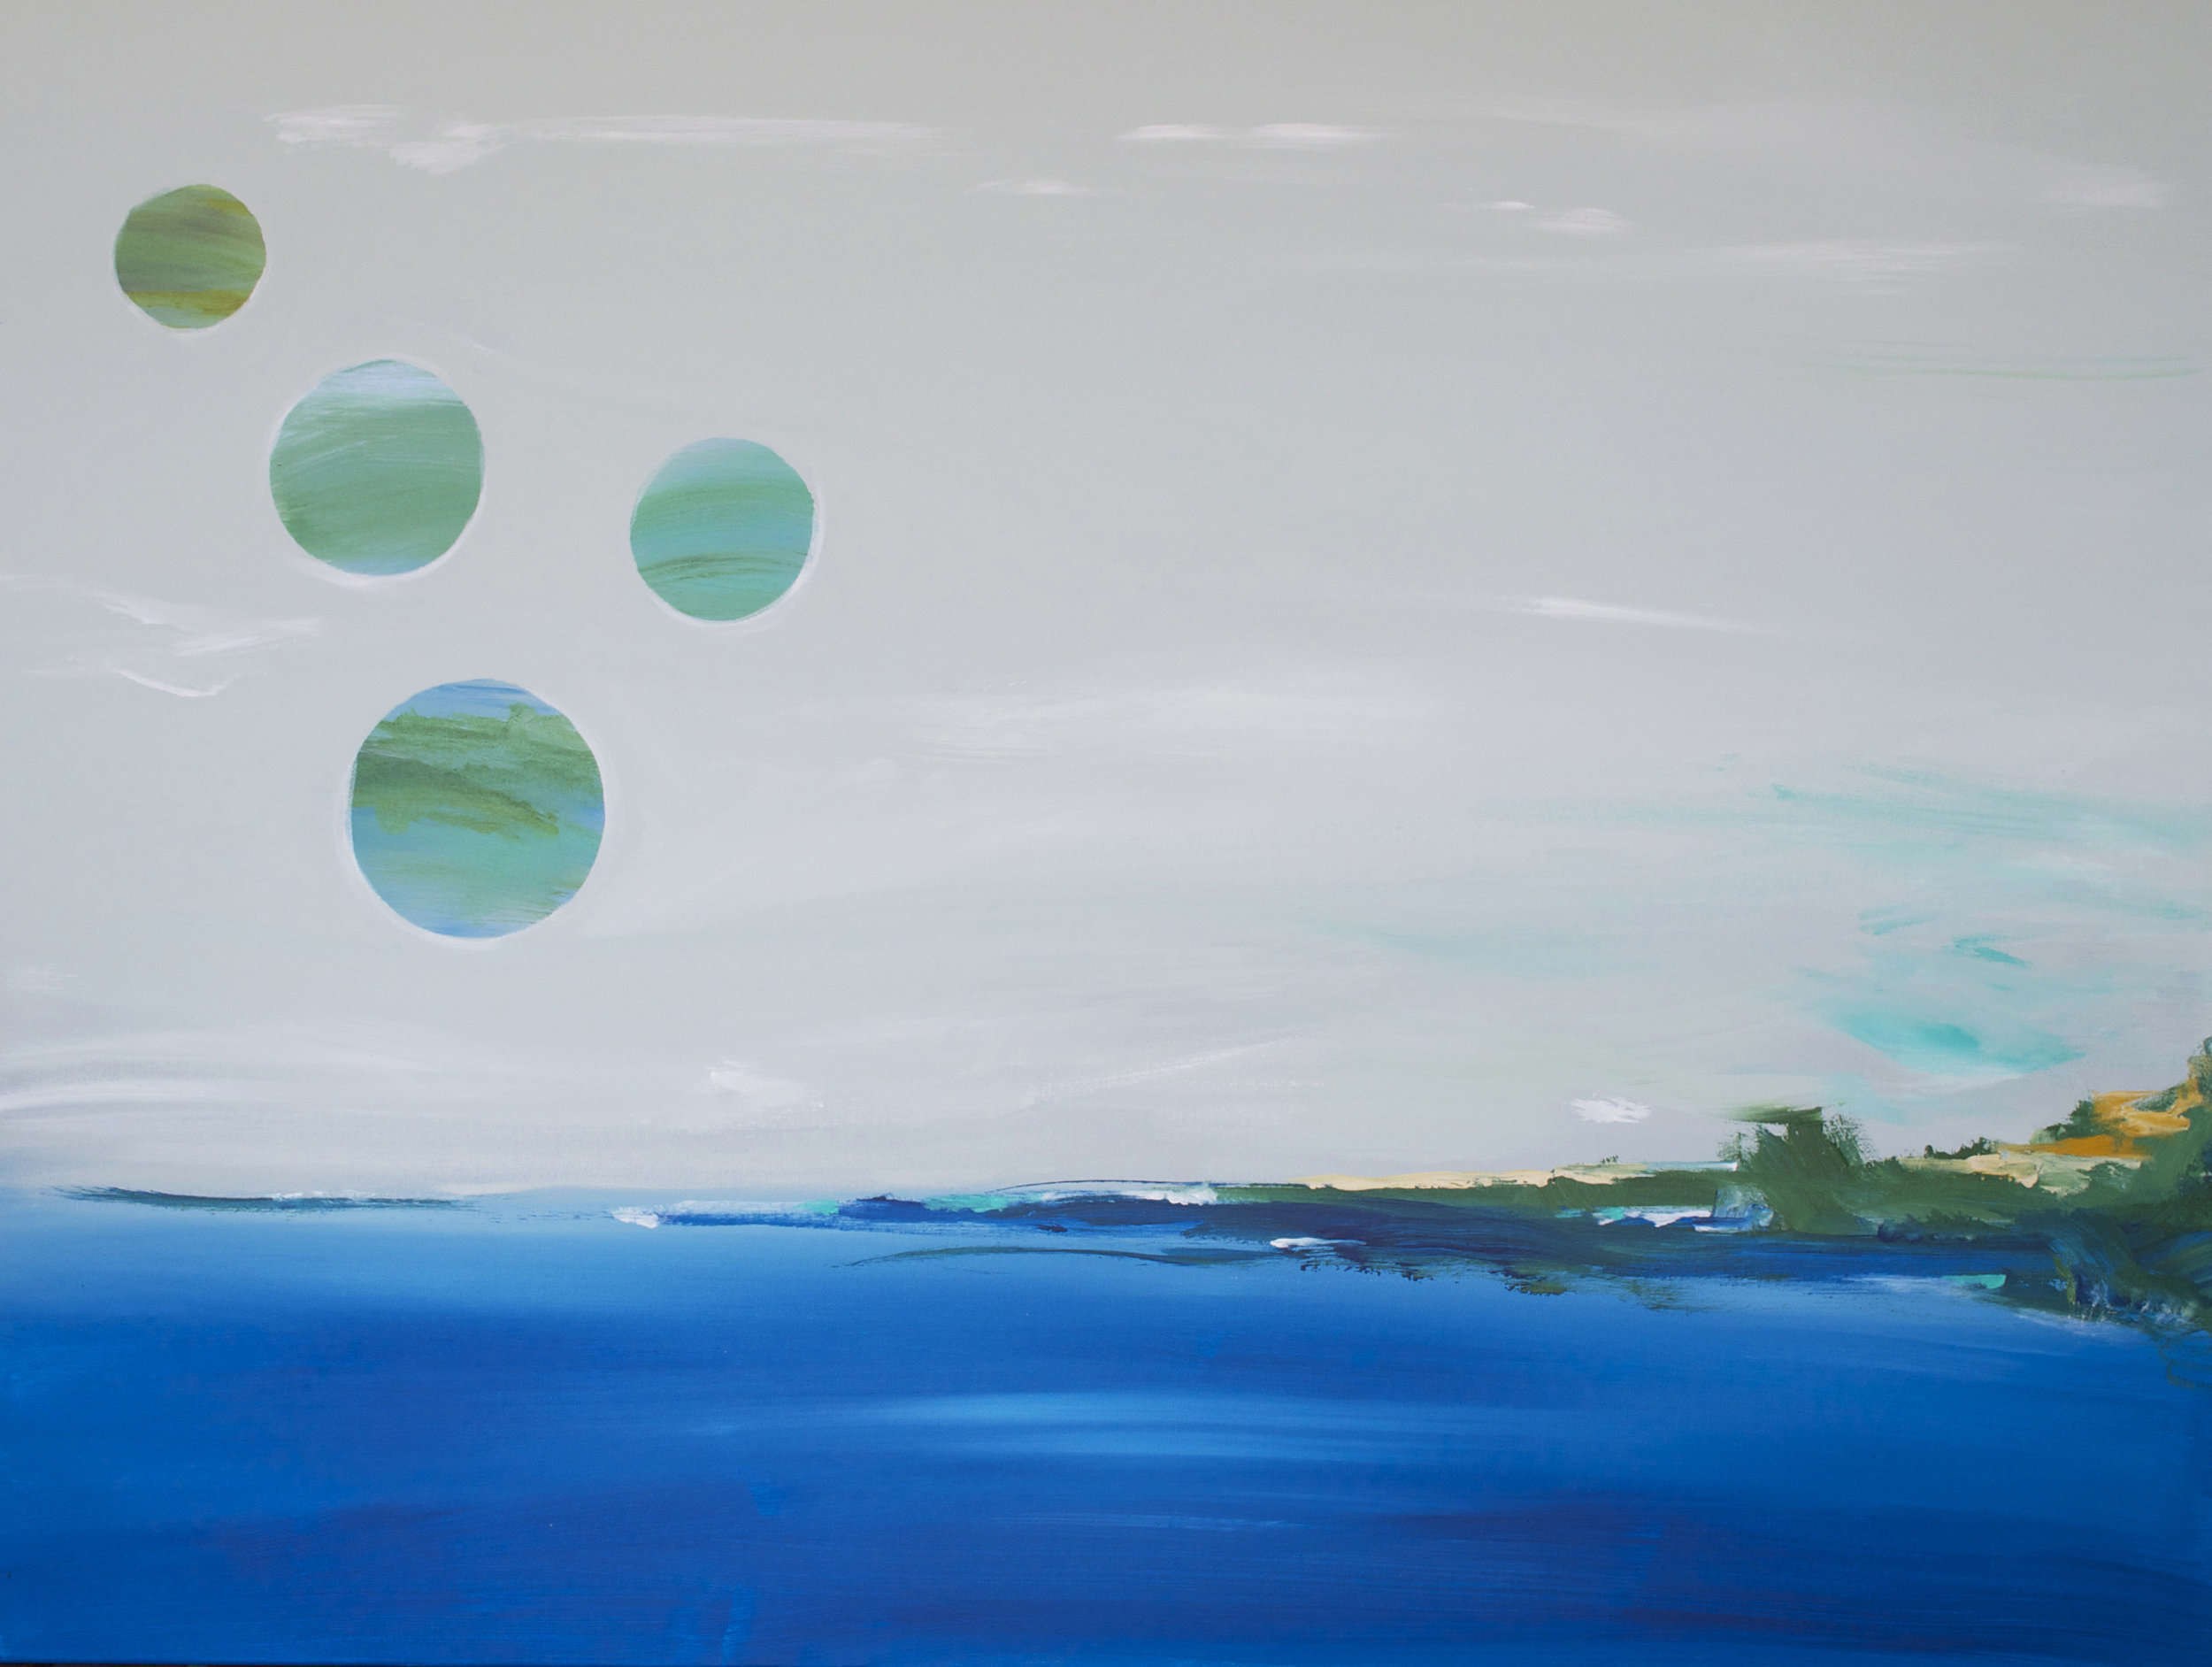 And Then There Were Four  | 36 x 48 inch acrylic on canvas